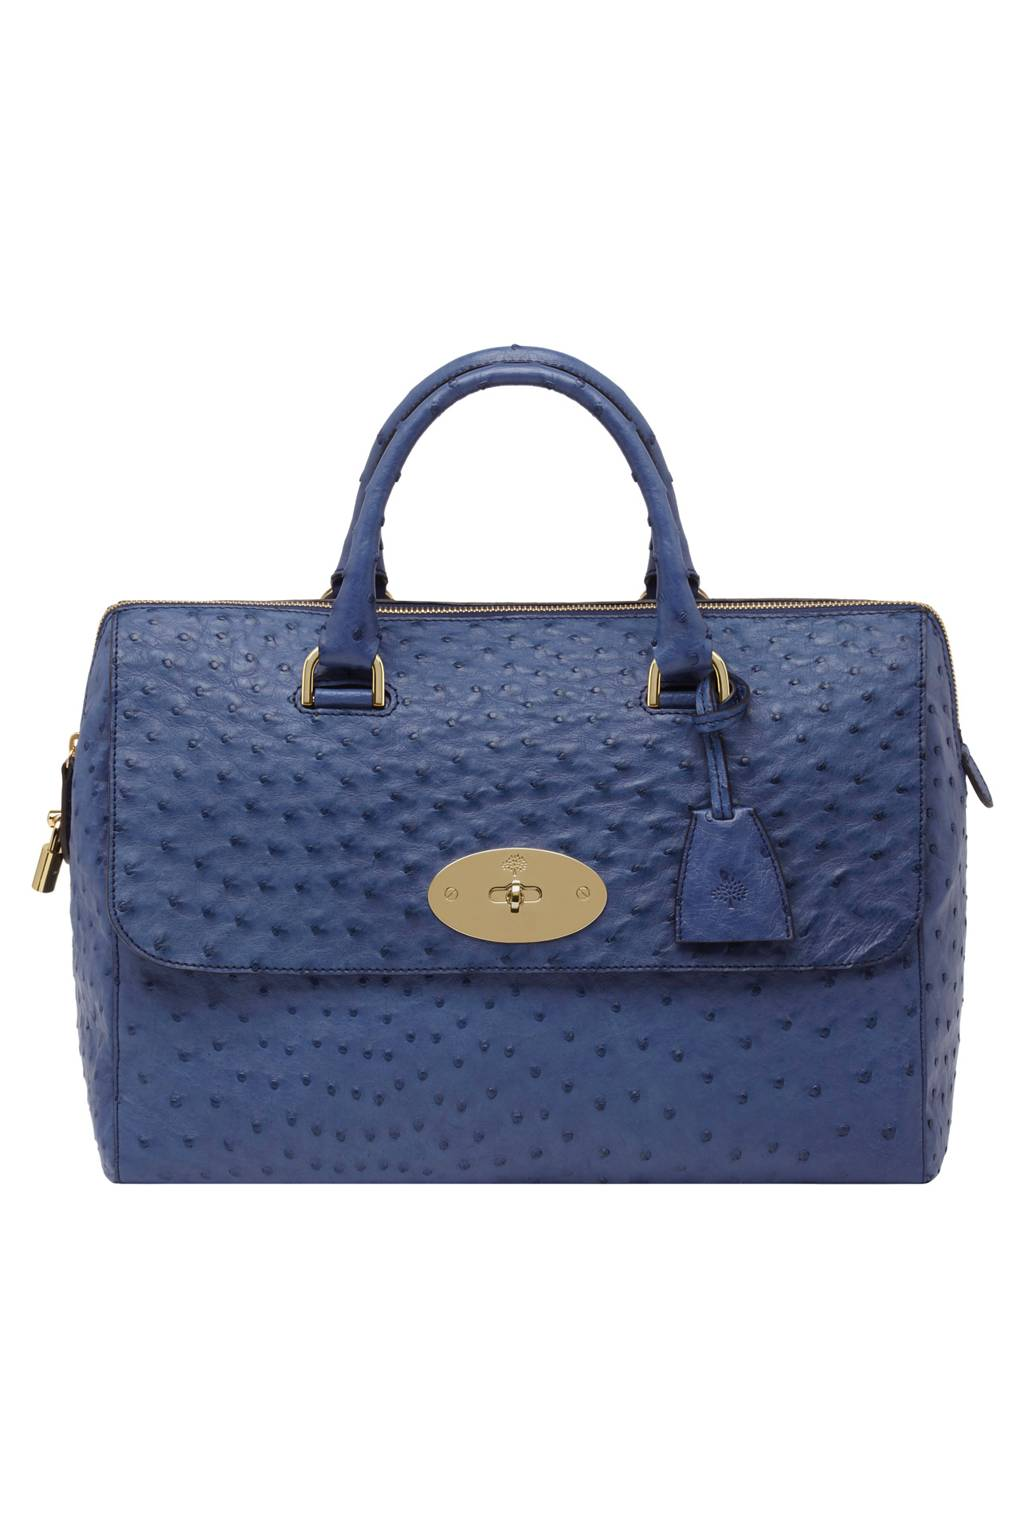 28399644feb Mulberry Del Rey Bag Launched – Handbag Launched | British Vogue